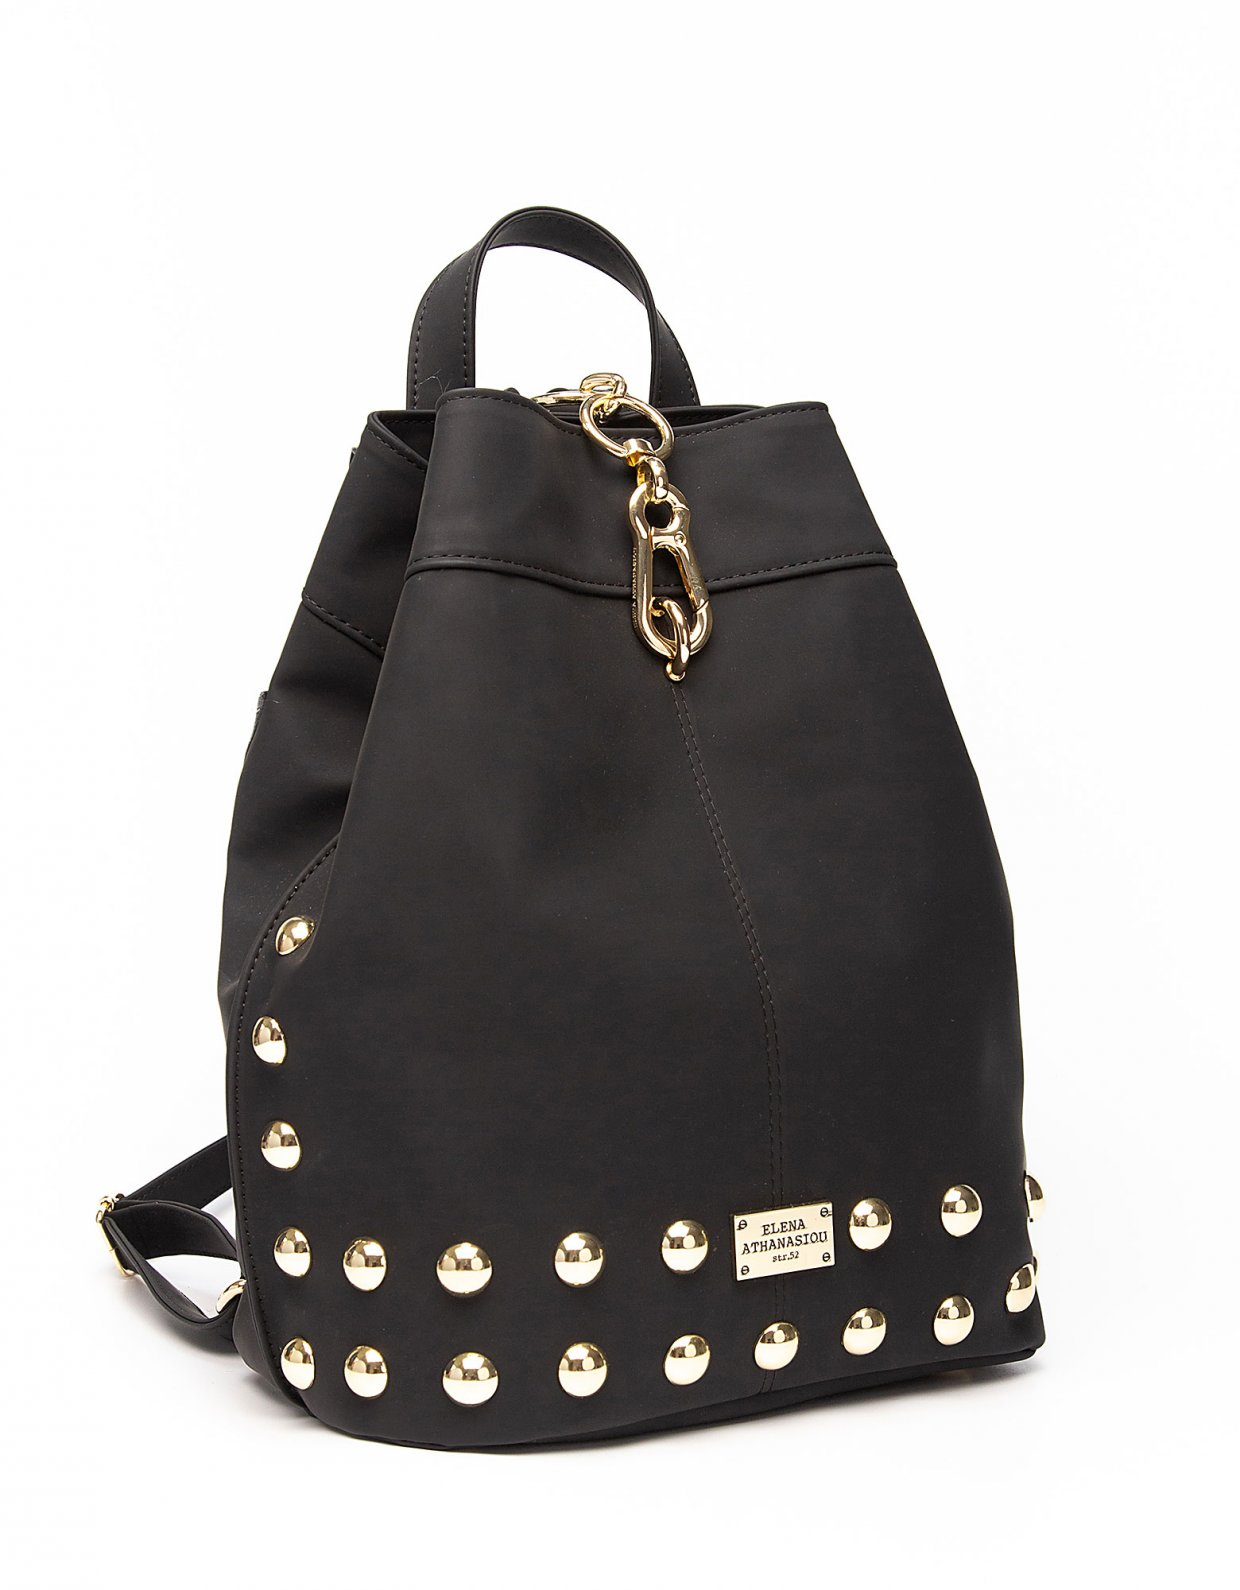 Elena Athanasiou Backpack matte black gold